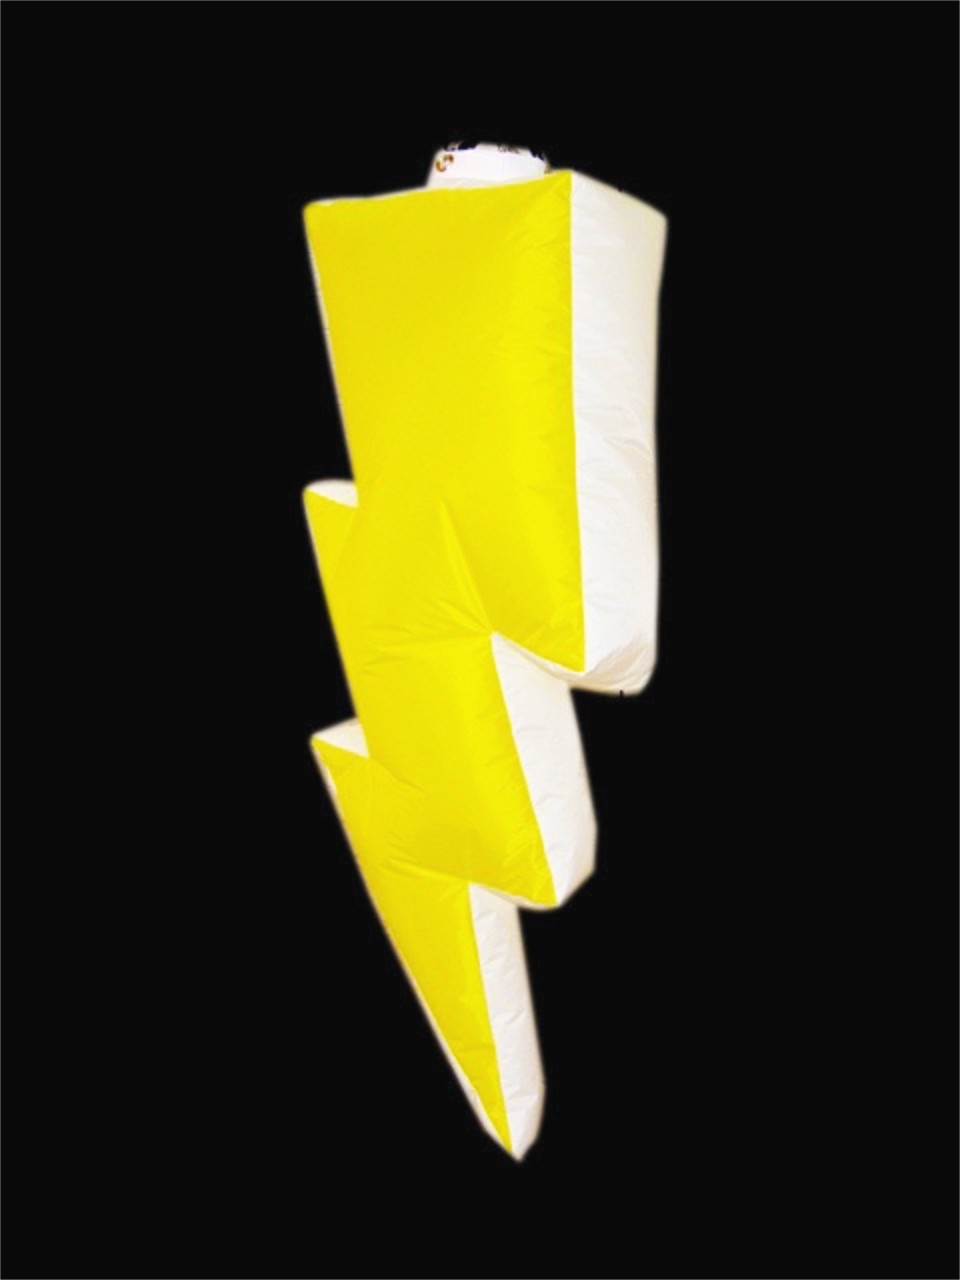 Hanging Inflatable Lighting Bolt 9ft/275cm x 4ft/122cm